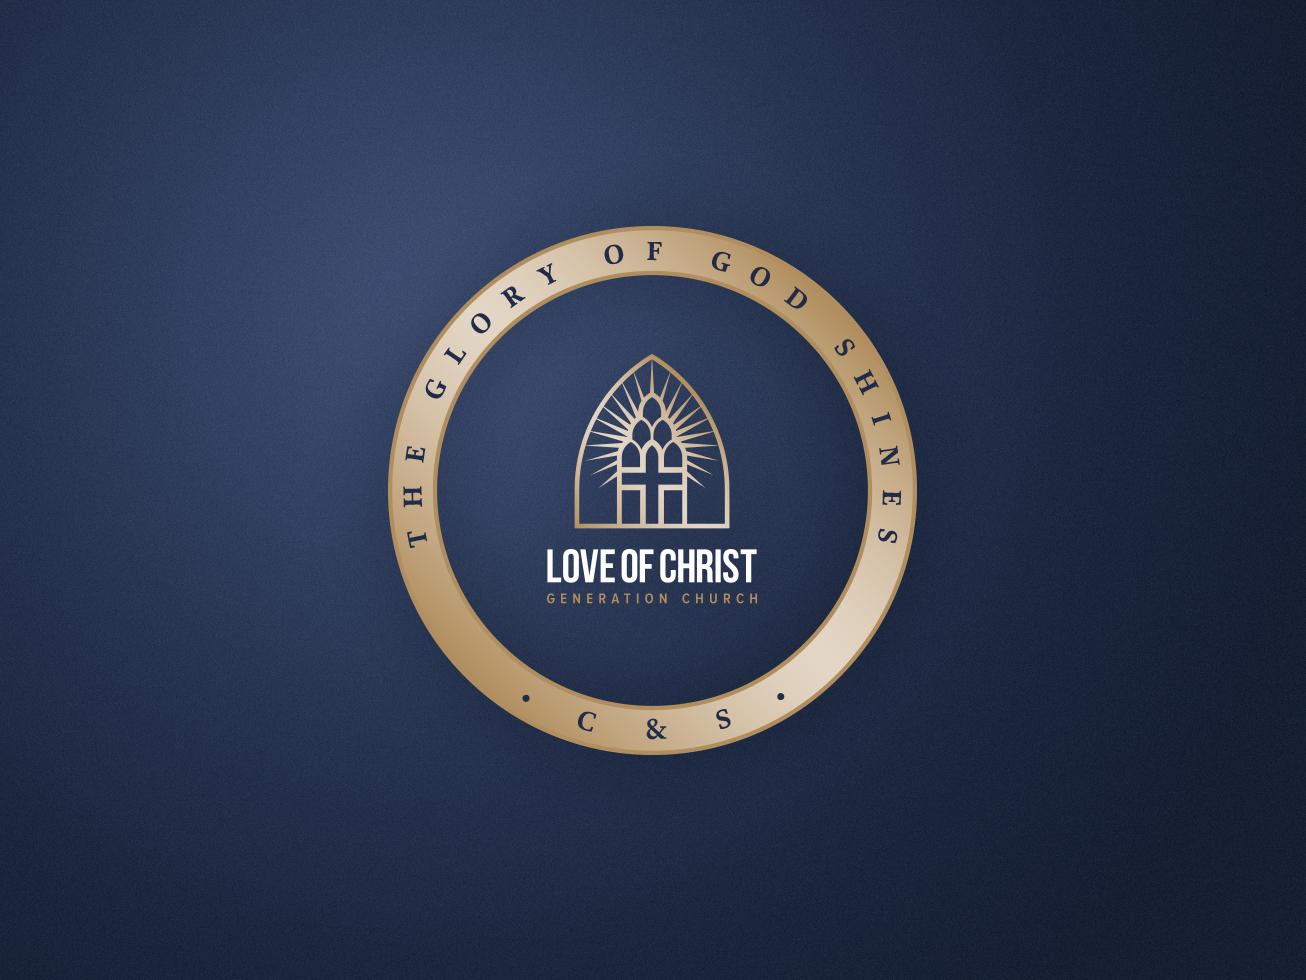 Love of christ church initial favourite brand logo version